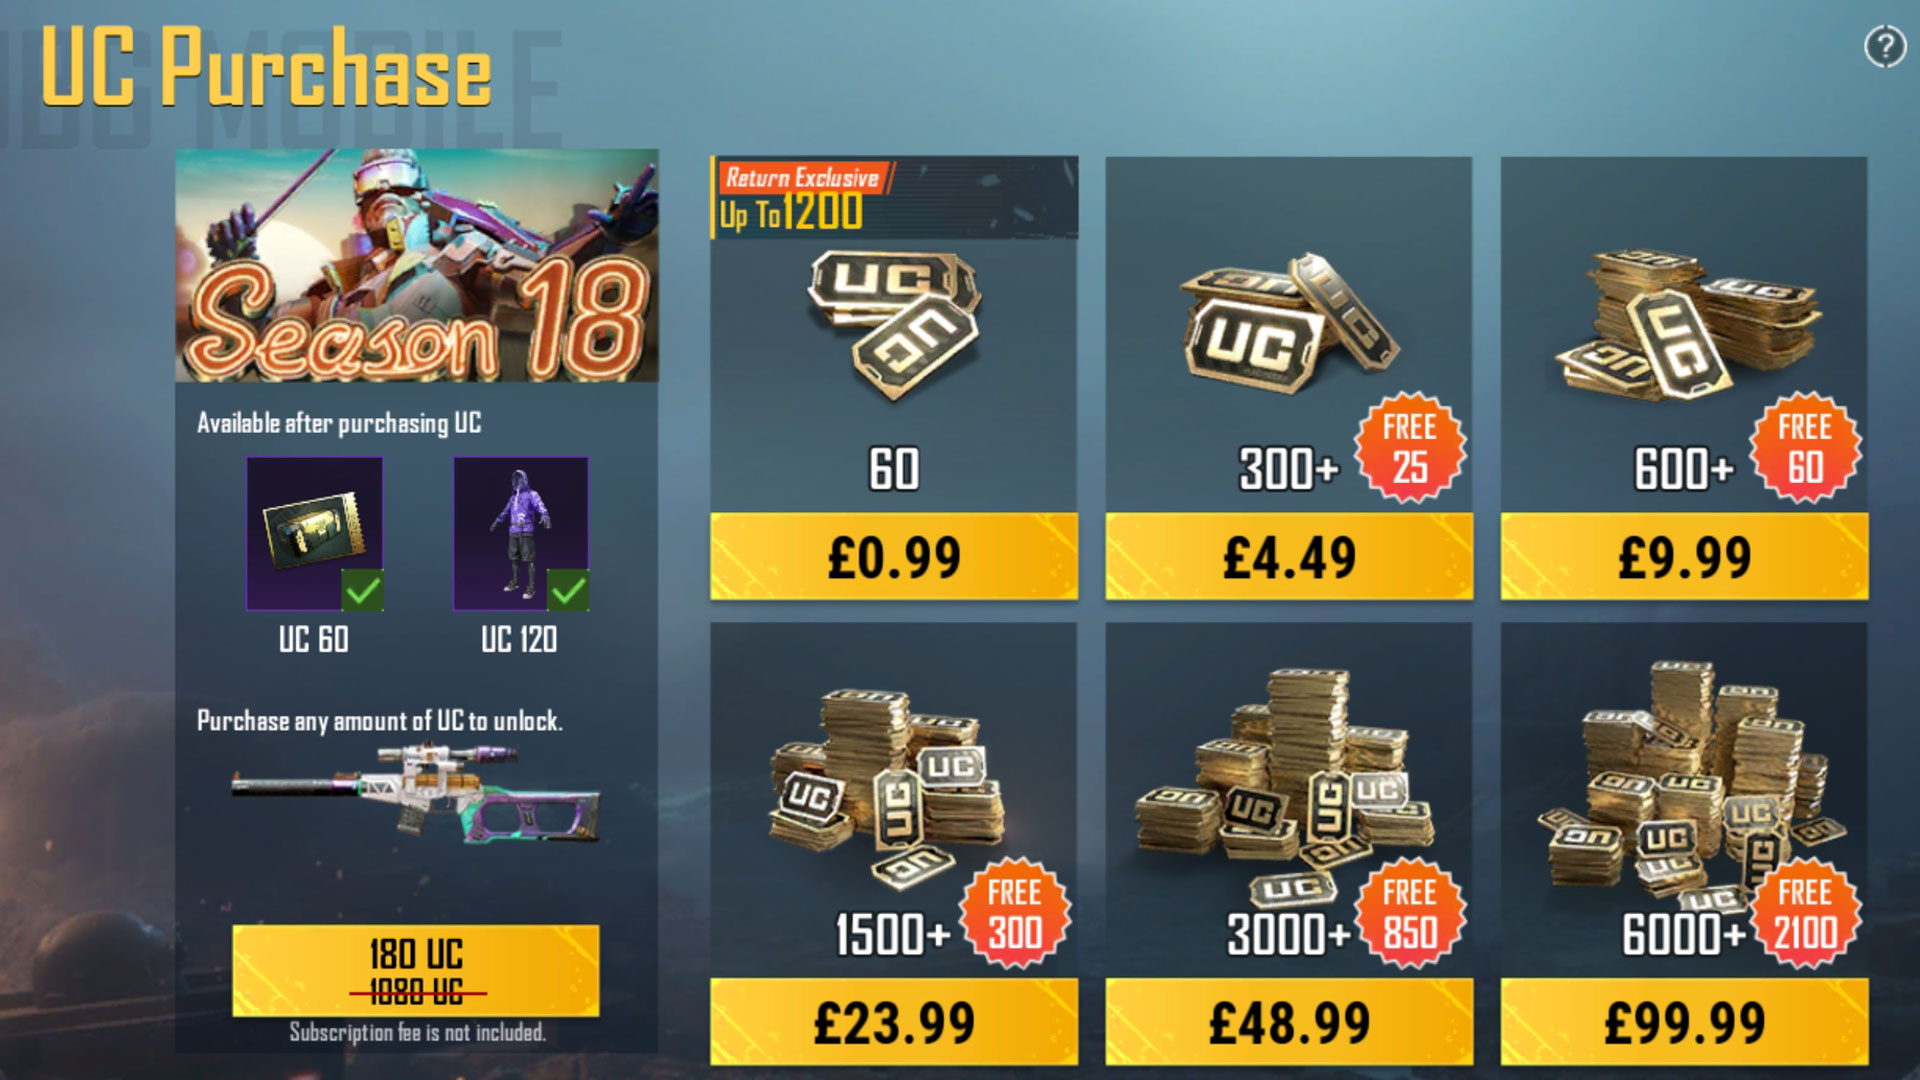 PUBG Mobile UC costs